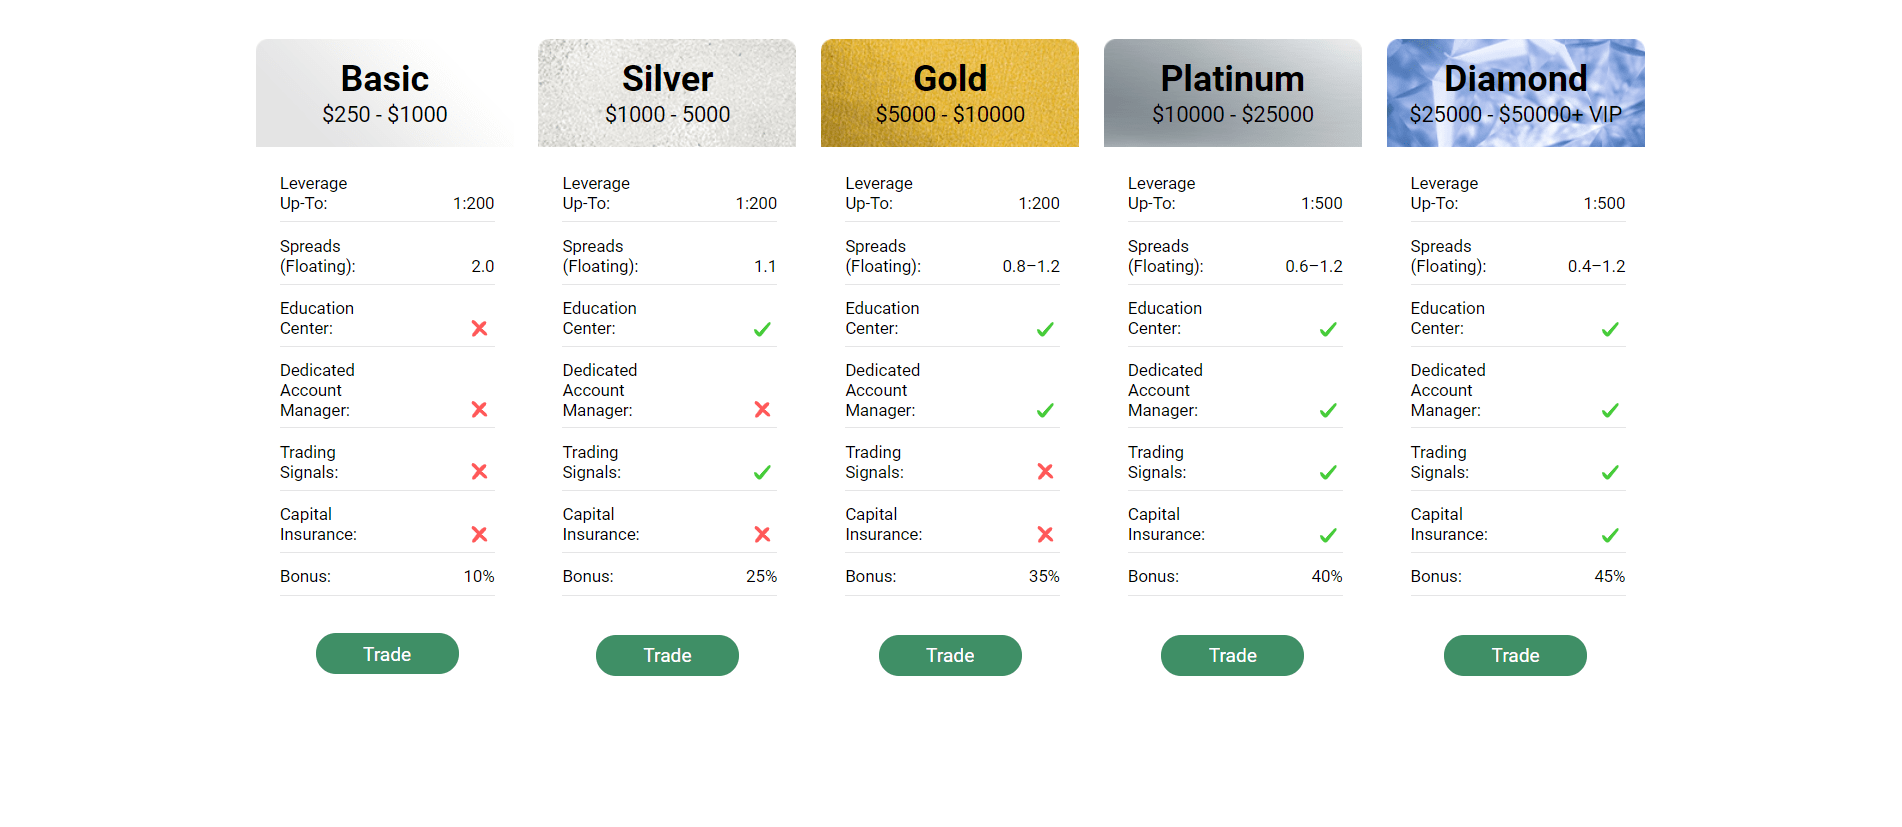 Can GrandFX Trade be trusted?